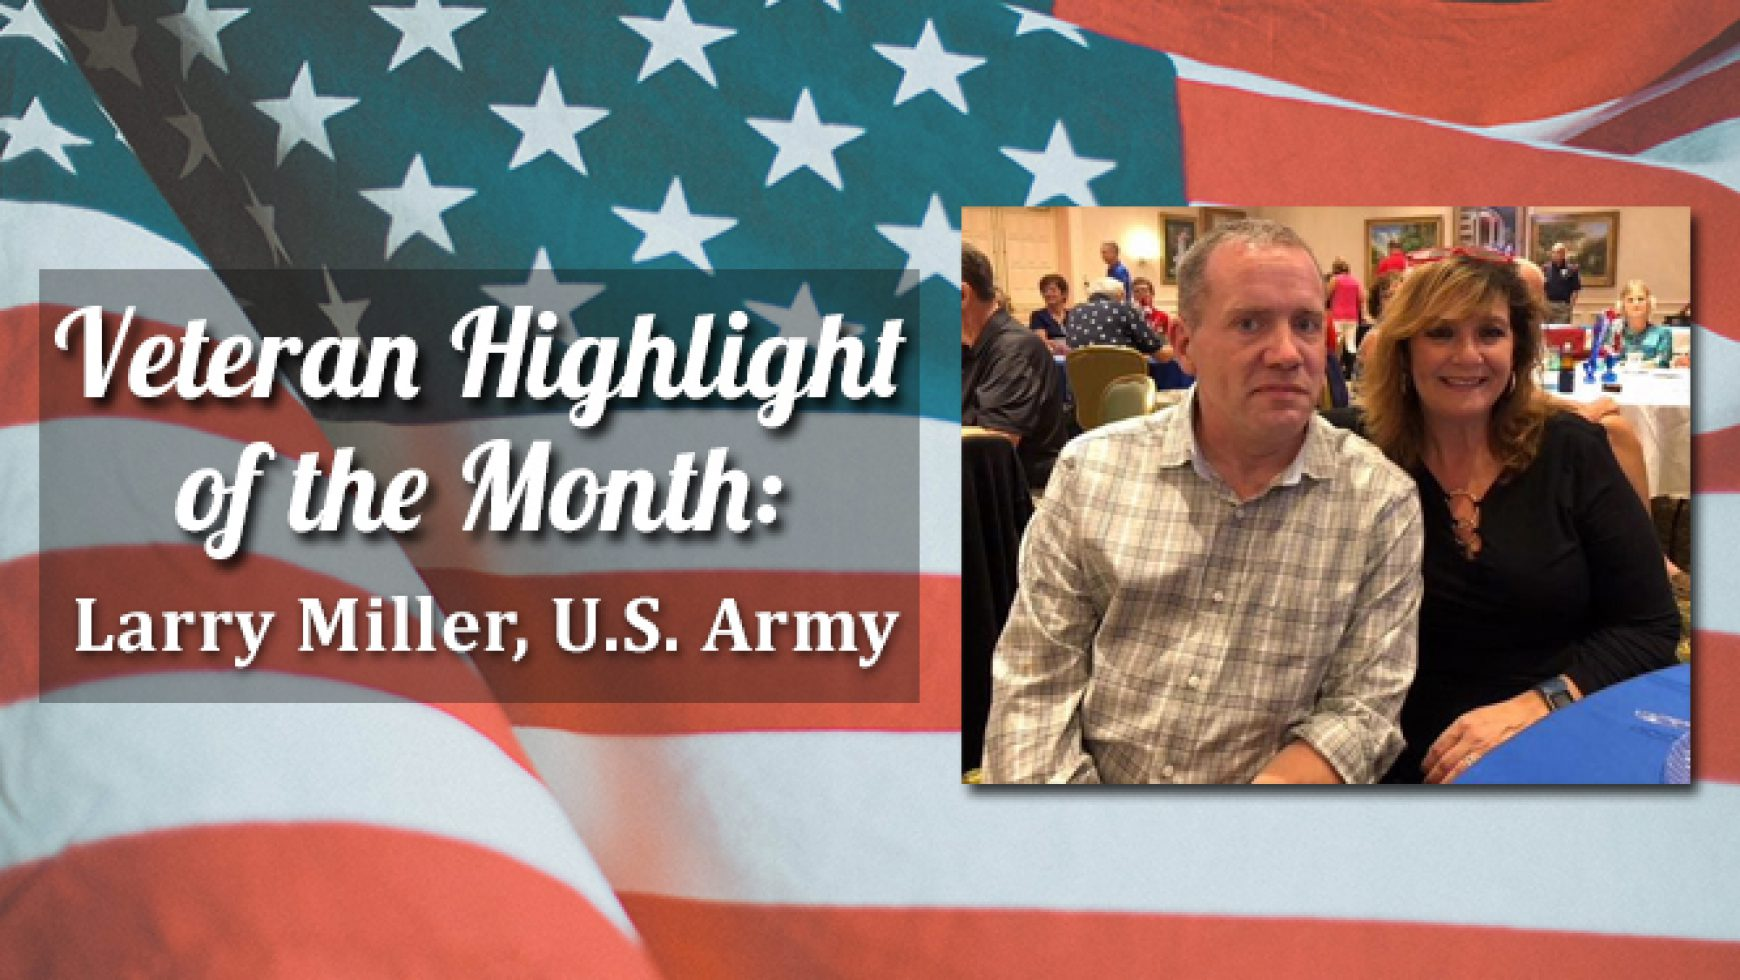 Veteran Highlight of the Month: (William) Larry Miller